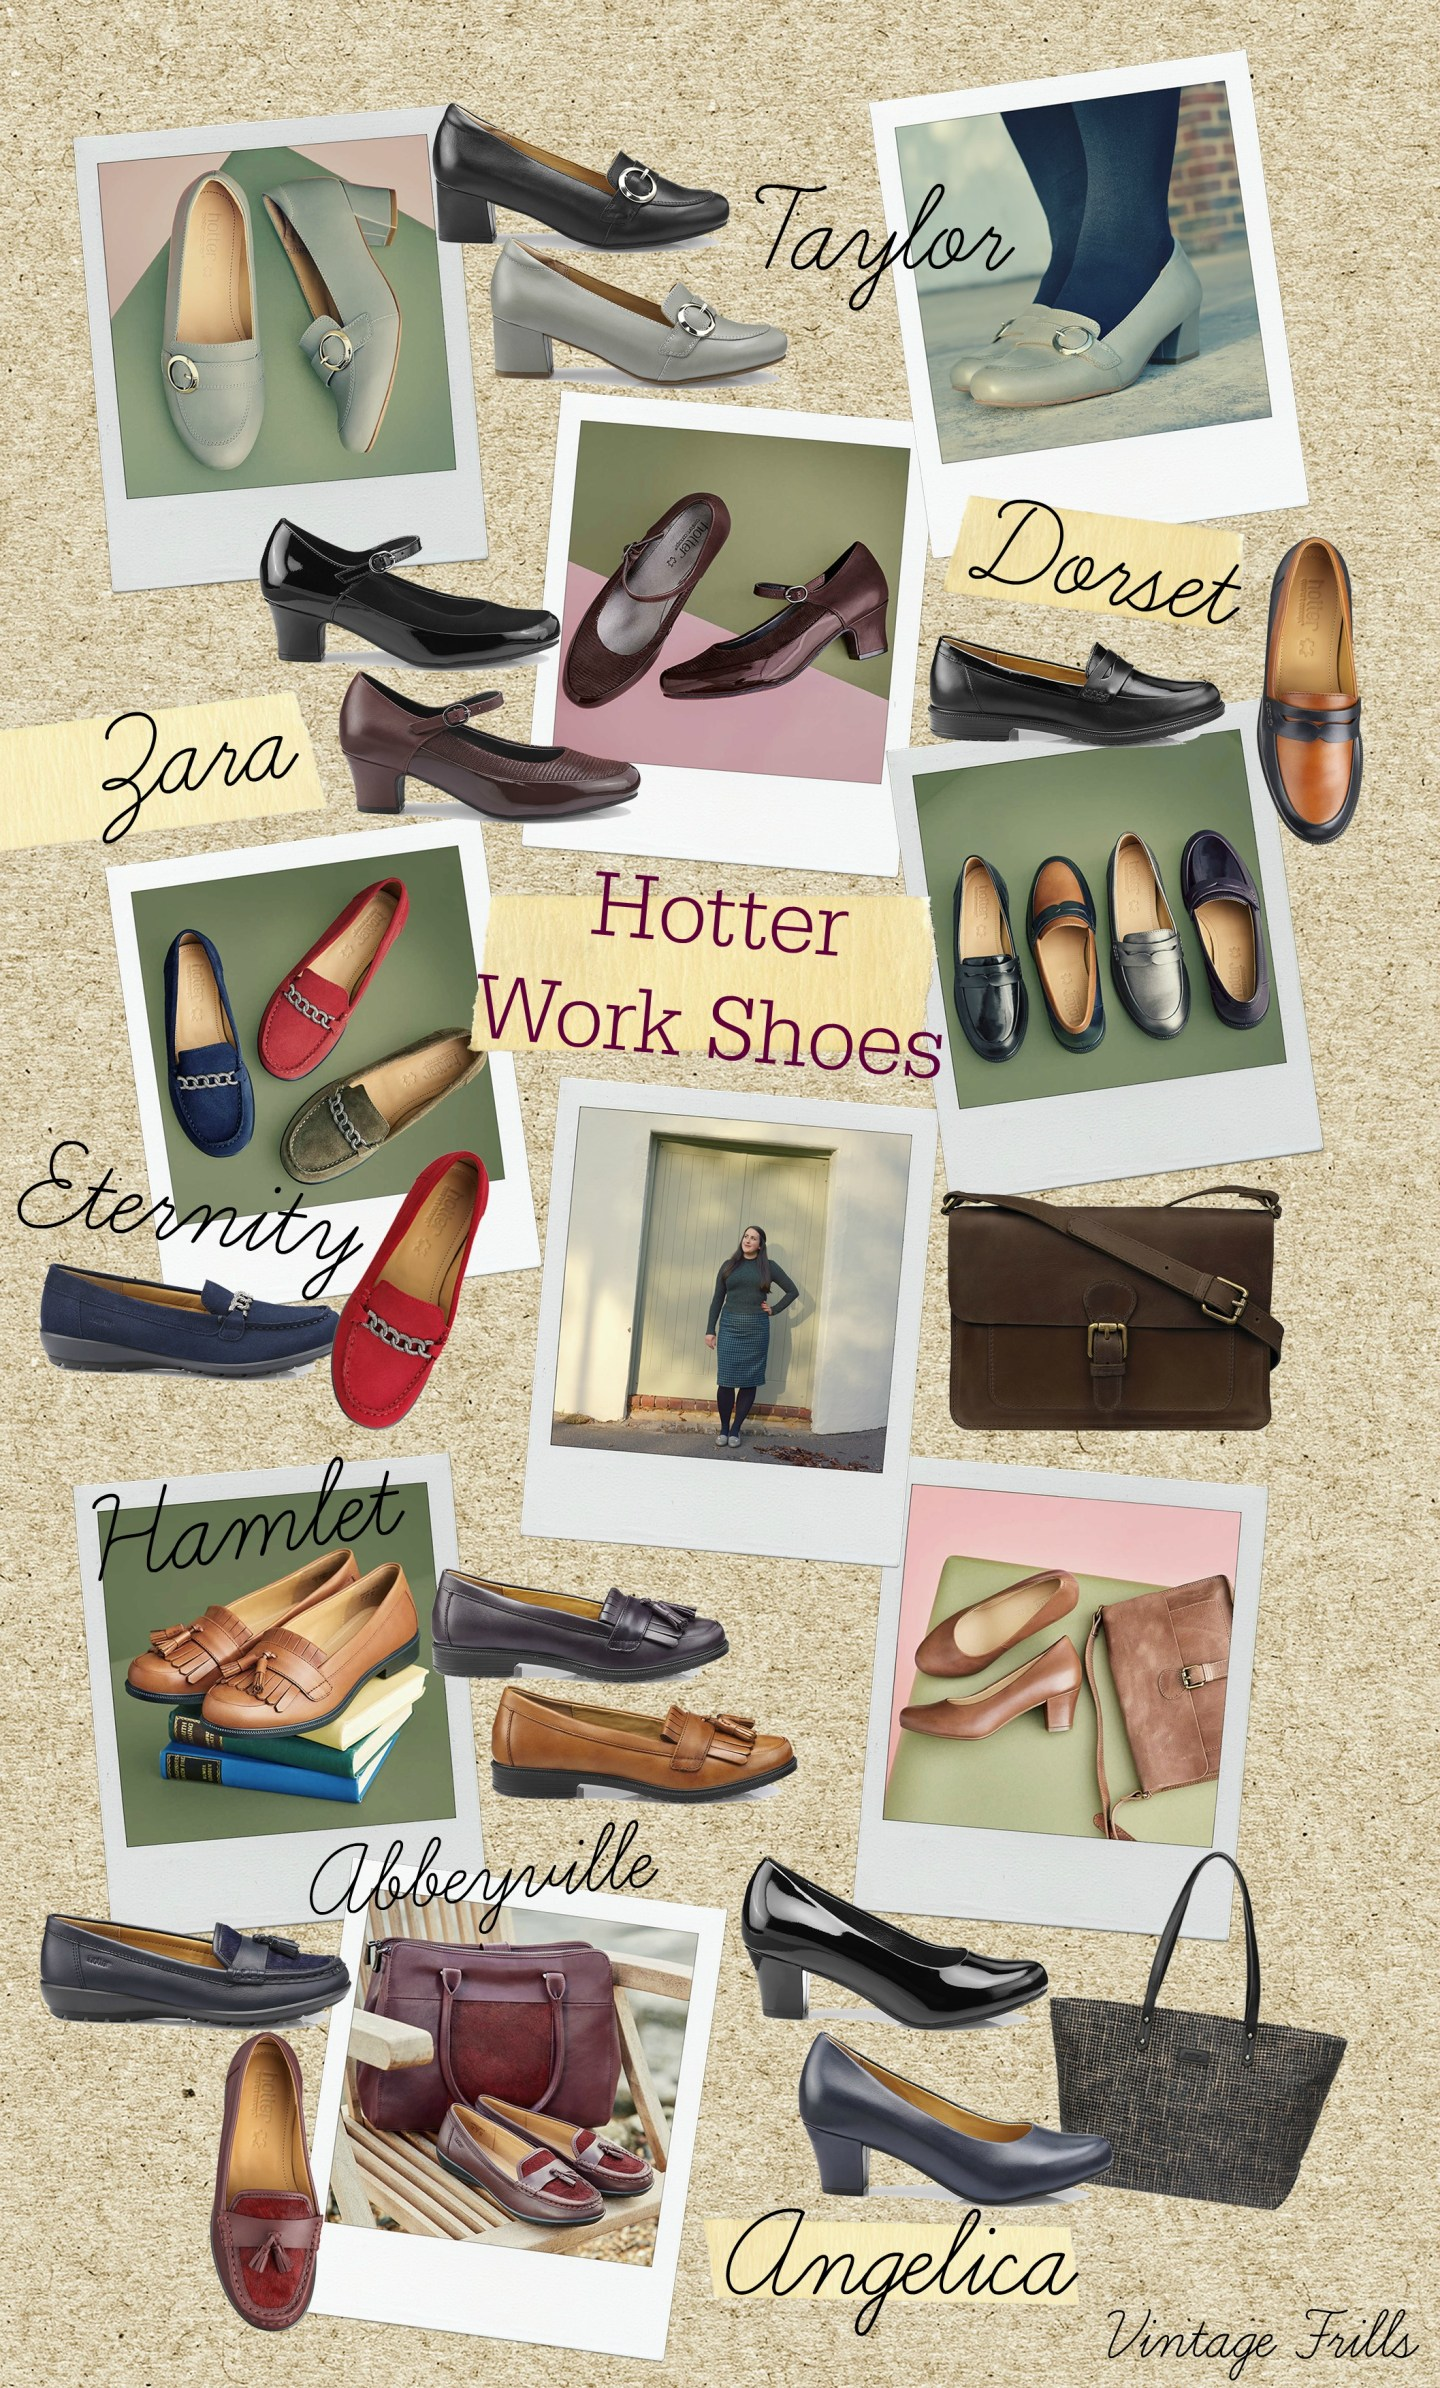 Comfortable vintage style work shoes from Hotter